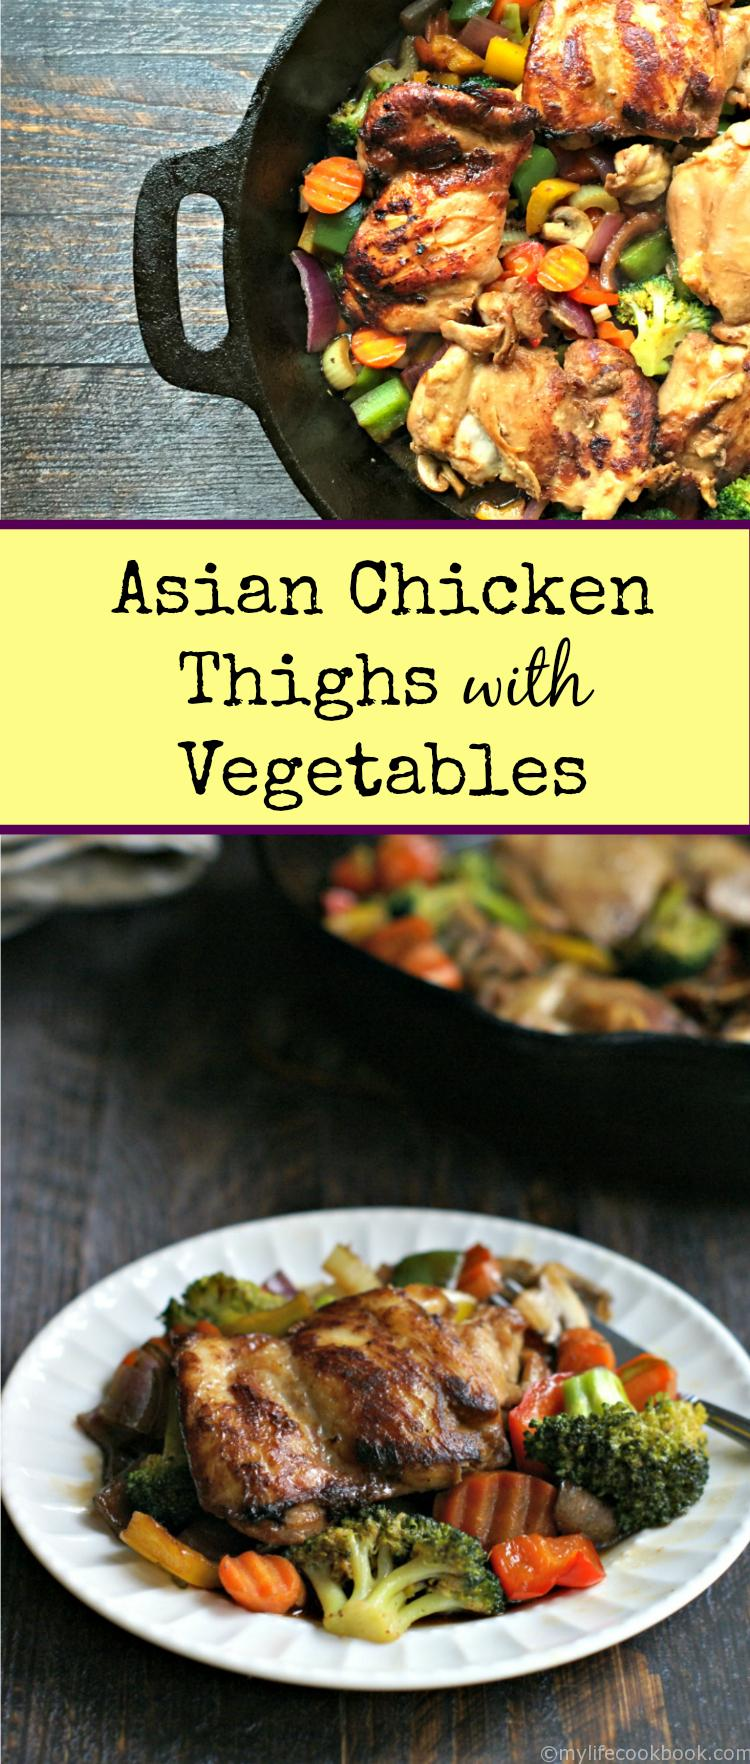 These Asian chicken thighs are an easy skillet dinner full of flavor. It's a yummy, inexpensive dish to work more vegetables in your diet.